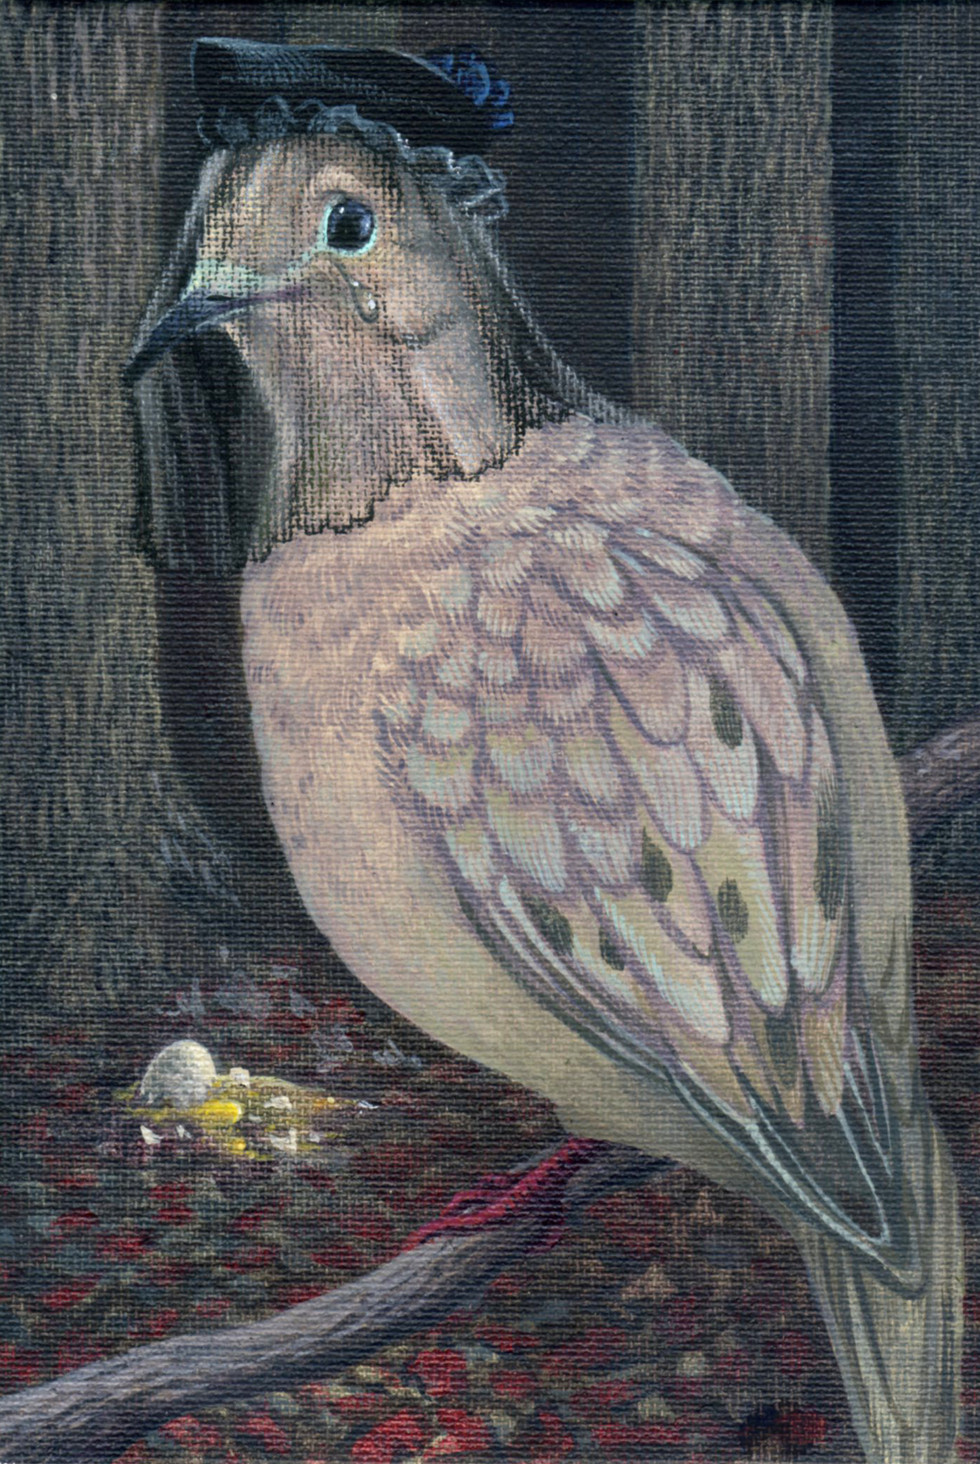 The Mourning Dove